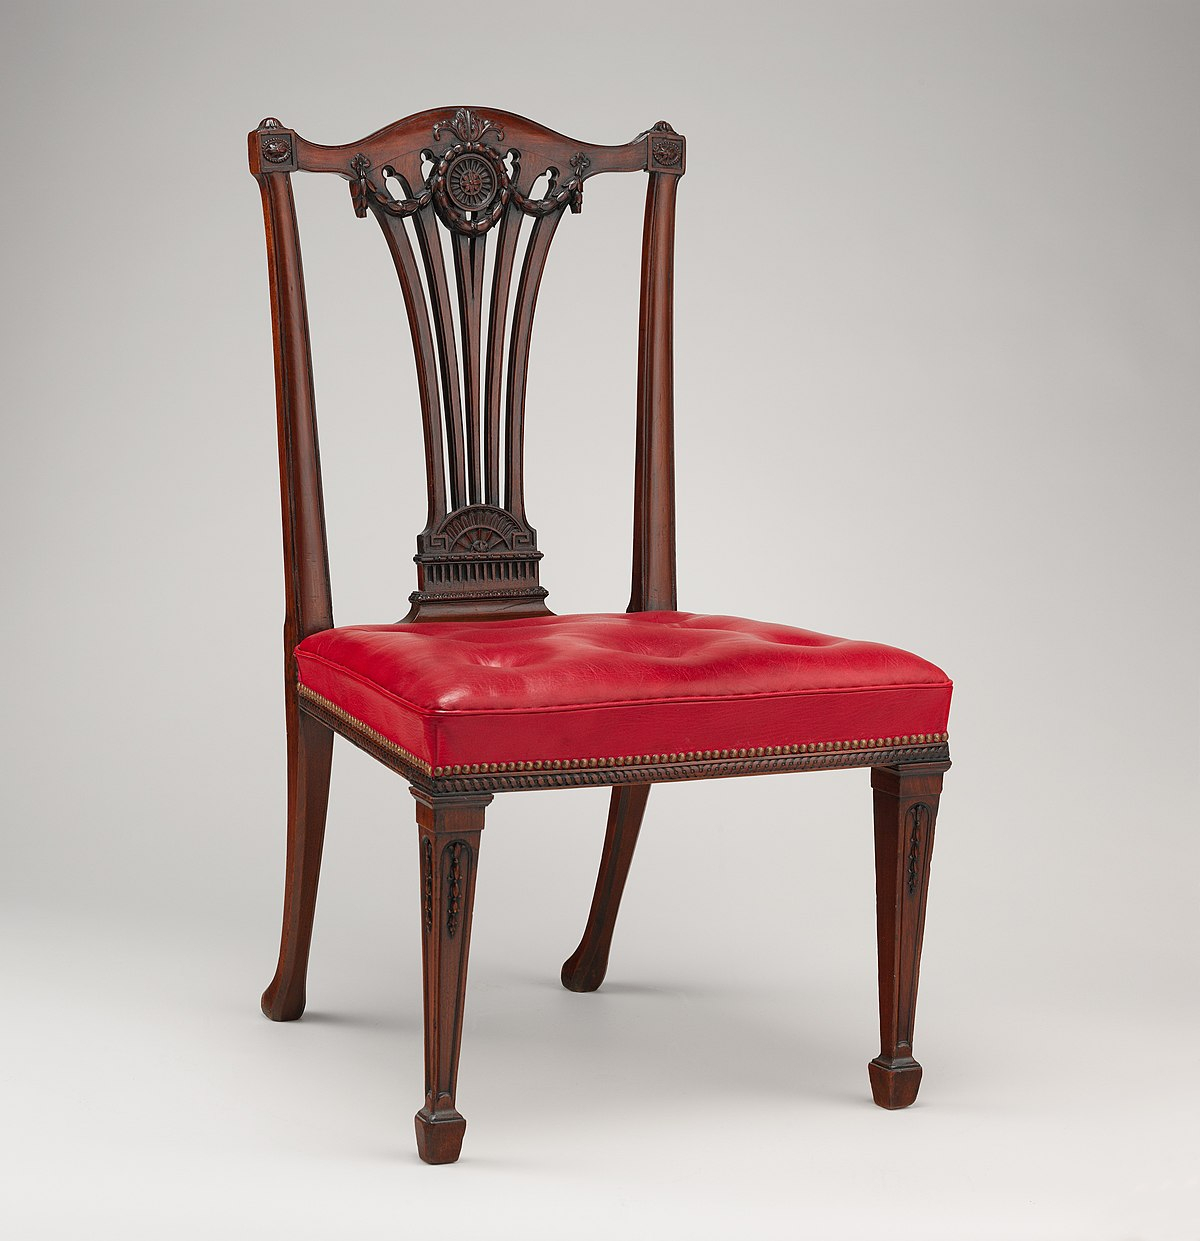 Chair – Wikipedia Throughout Plastic Arm Chairs With Rocking Legs (View 16 of 20)